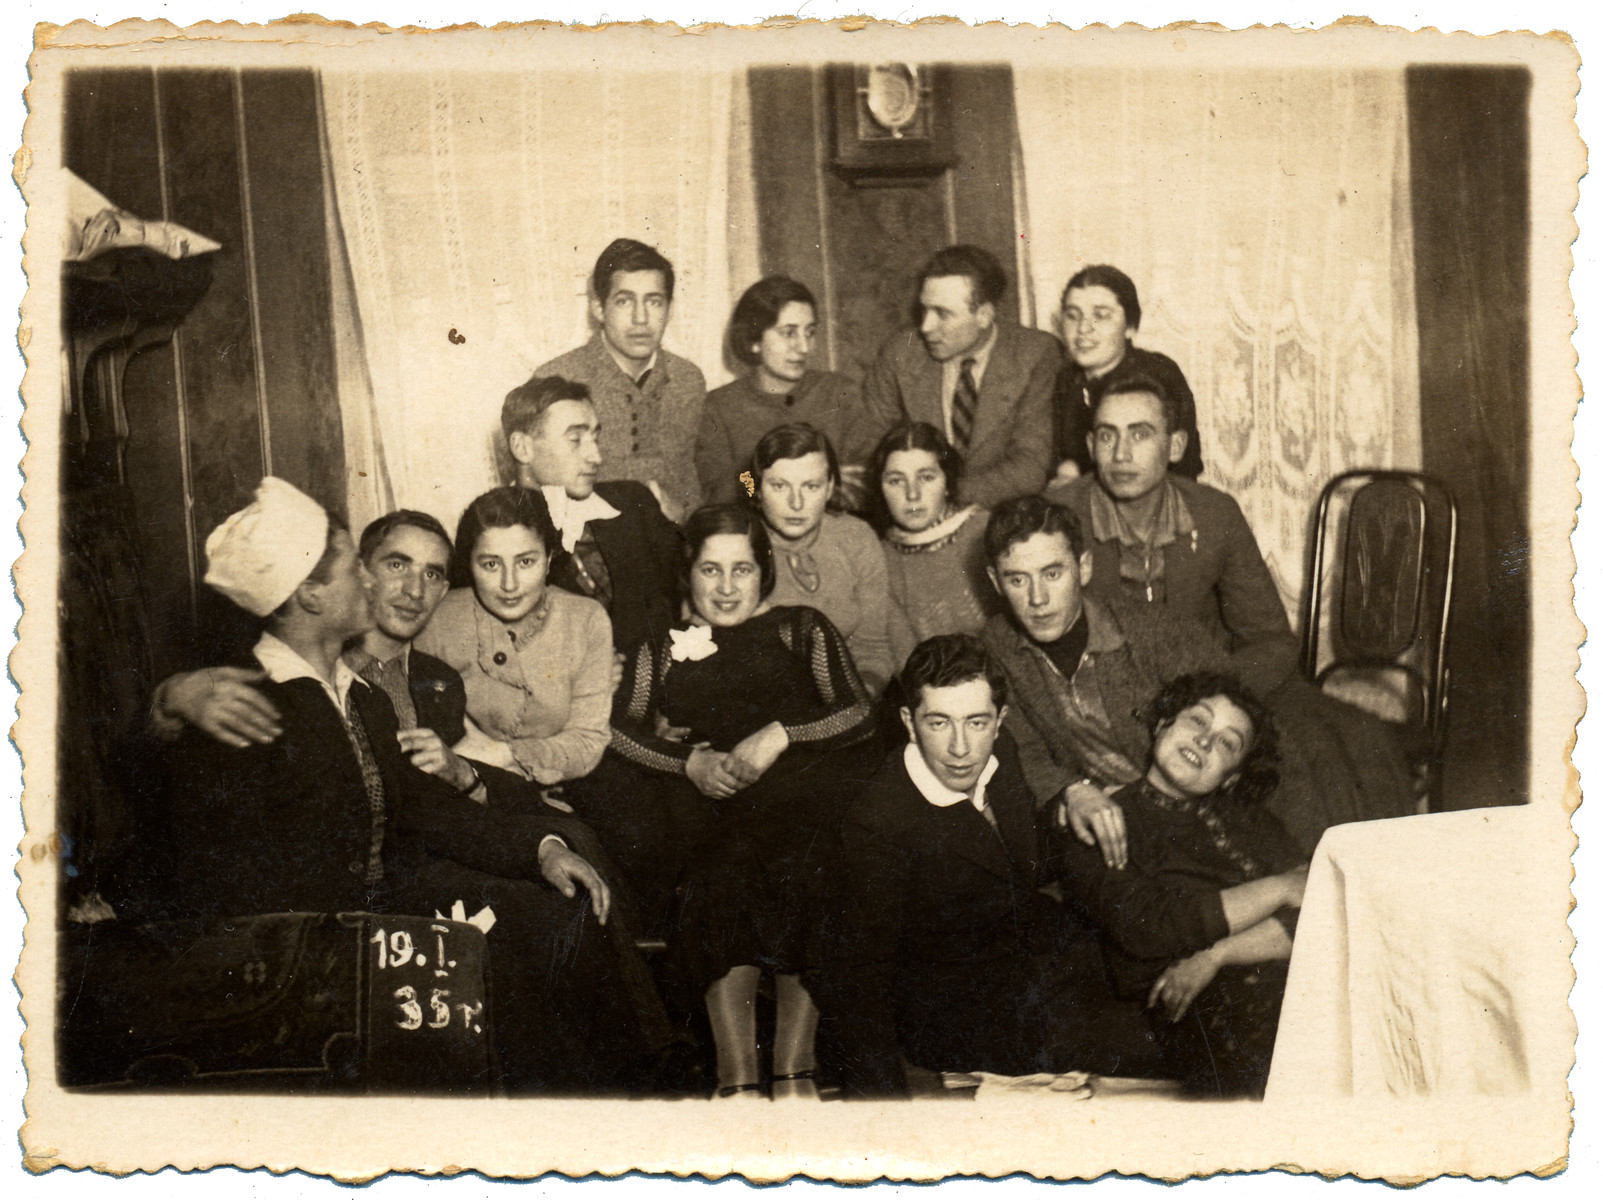 A group of young people pose together for a photograph.   Pictured on the far left is Jan Szelubski.